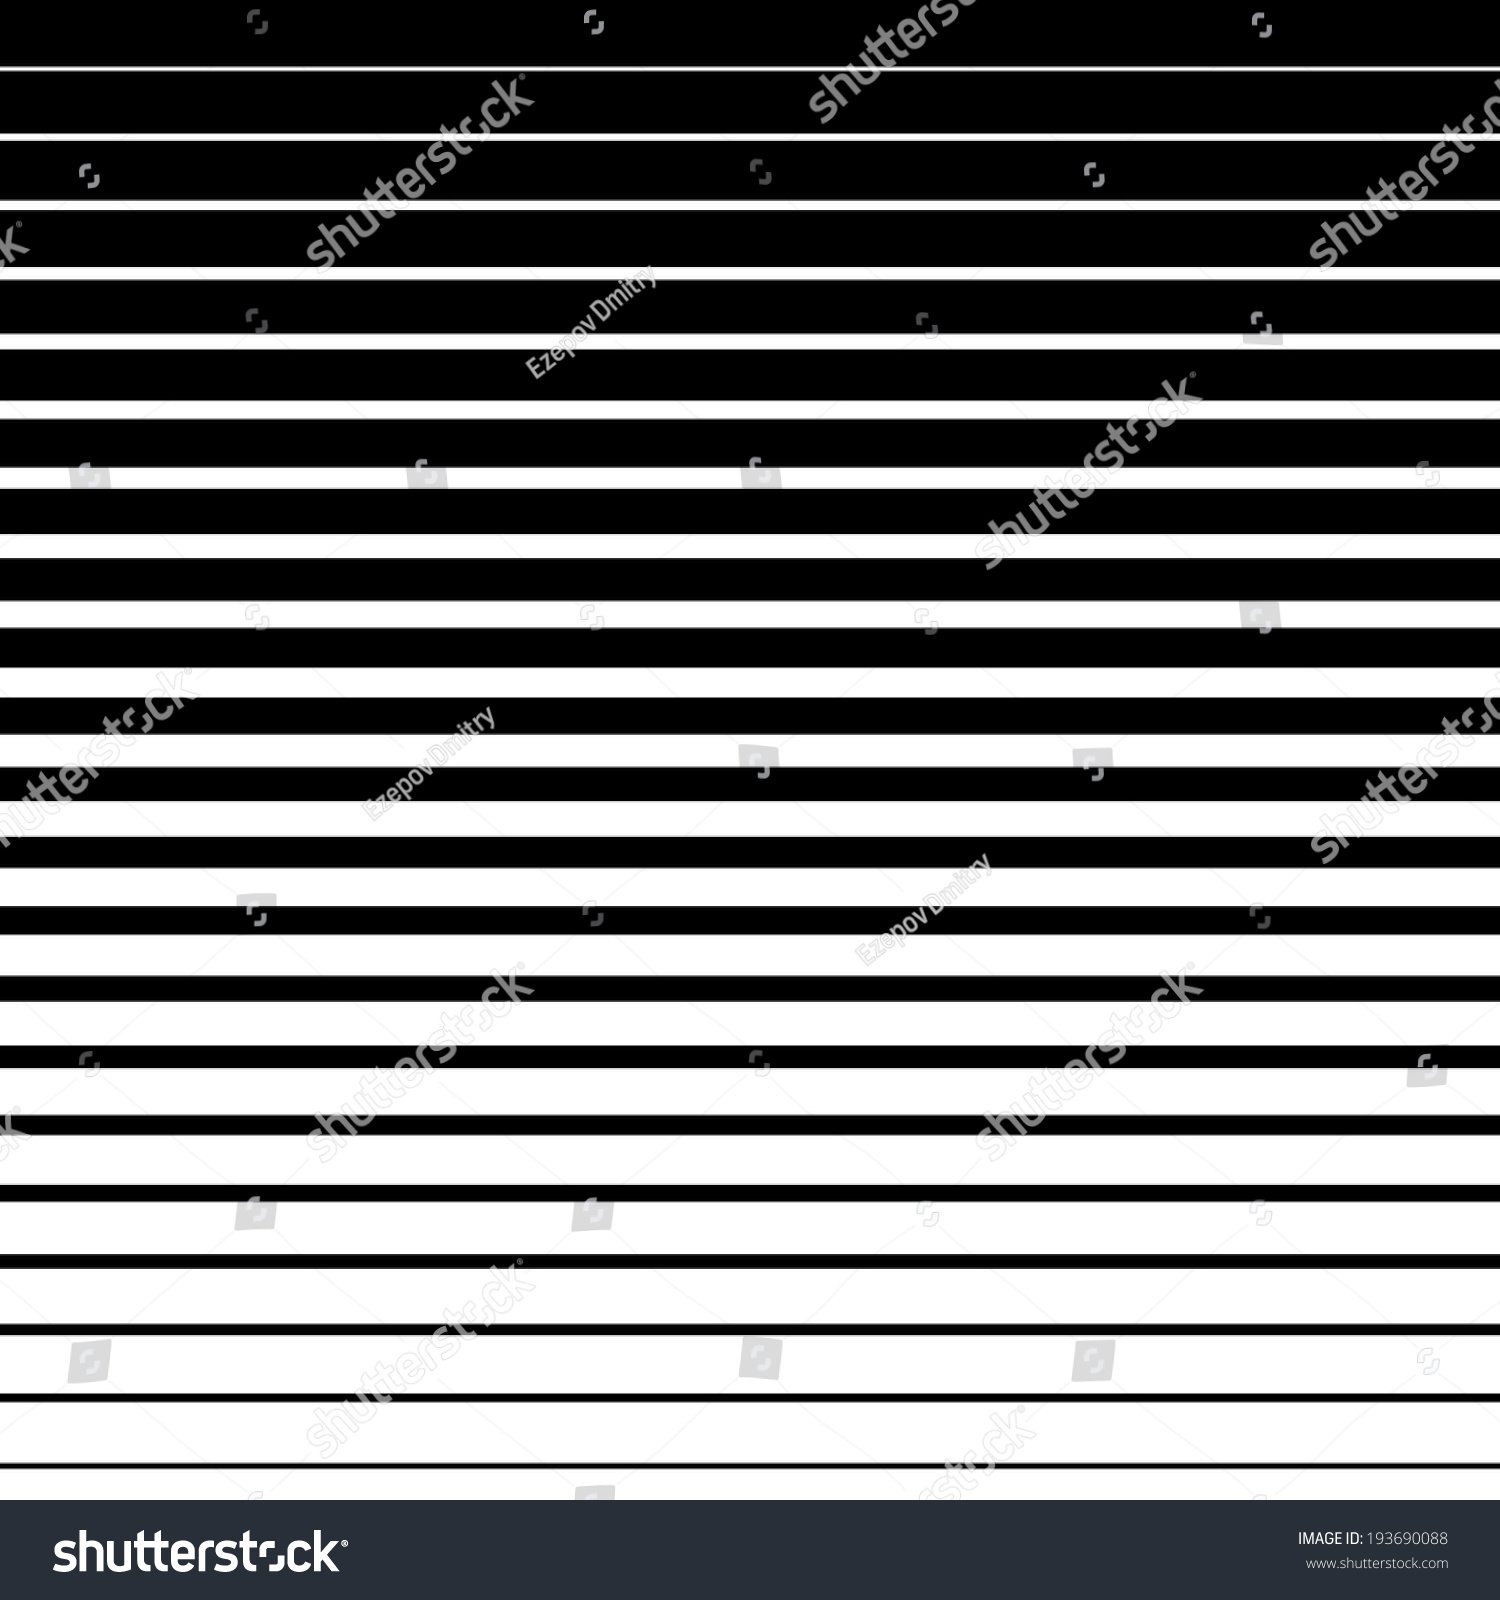 Drawing Lines With Gradients : Gradient seamless background black lines stock vector